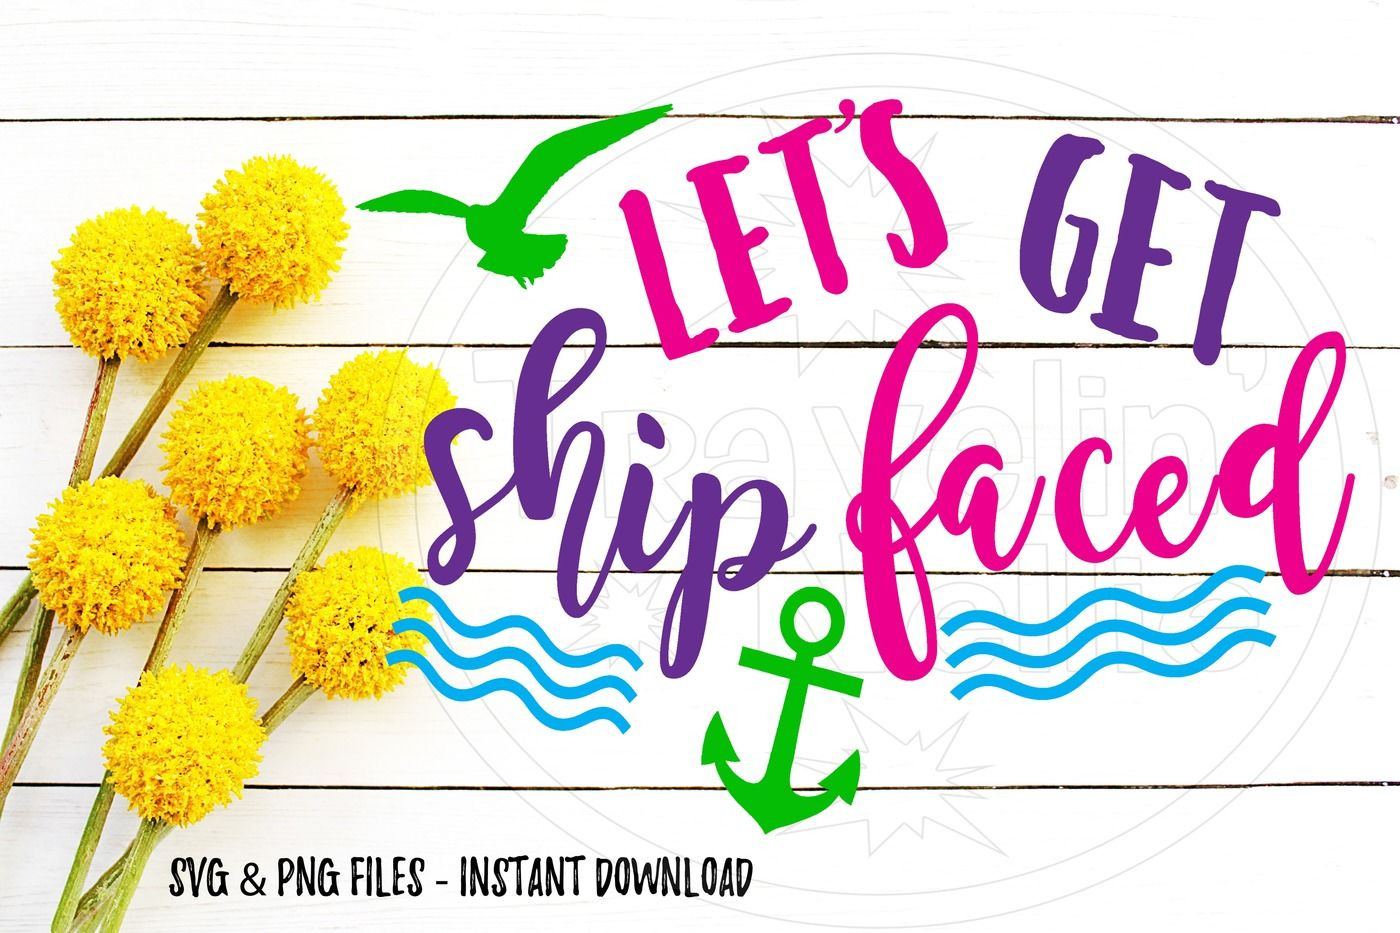 Let S Get Ship Faced Funny Cruise Svg Svg Print Cut Image Files